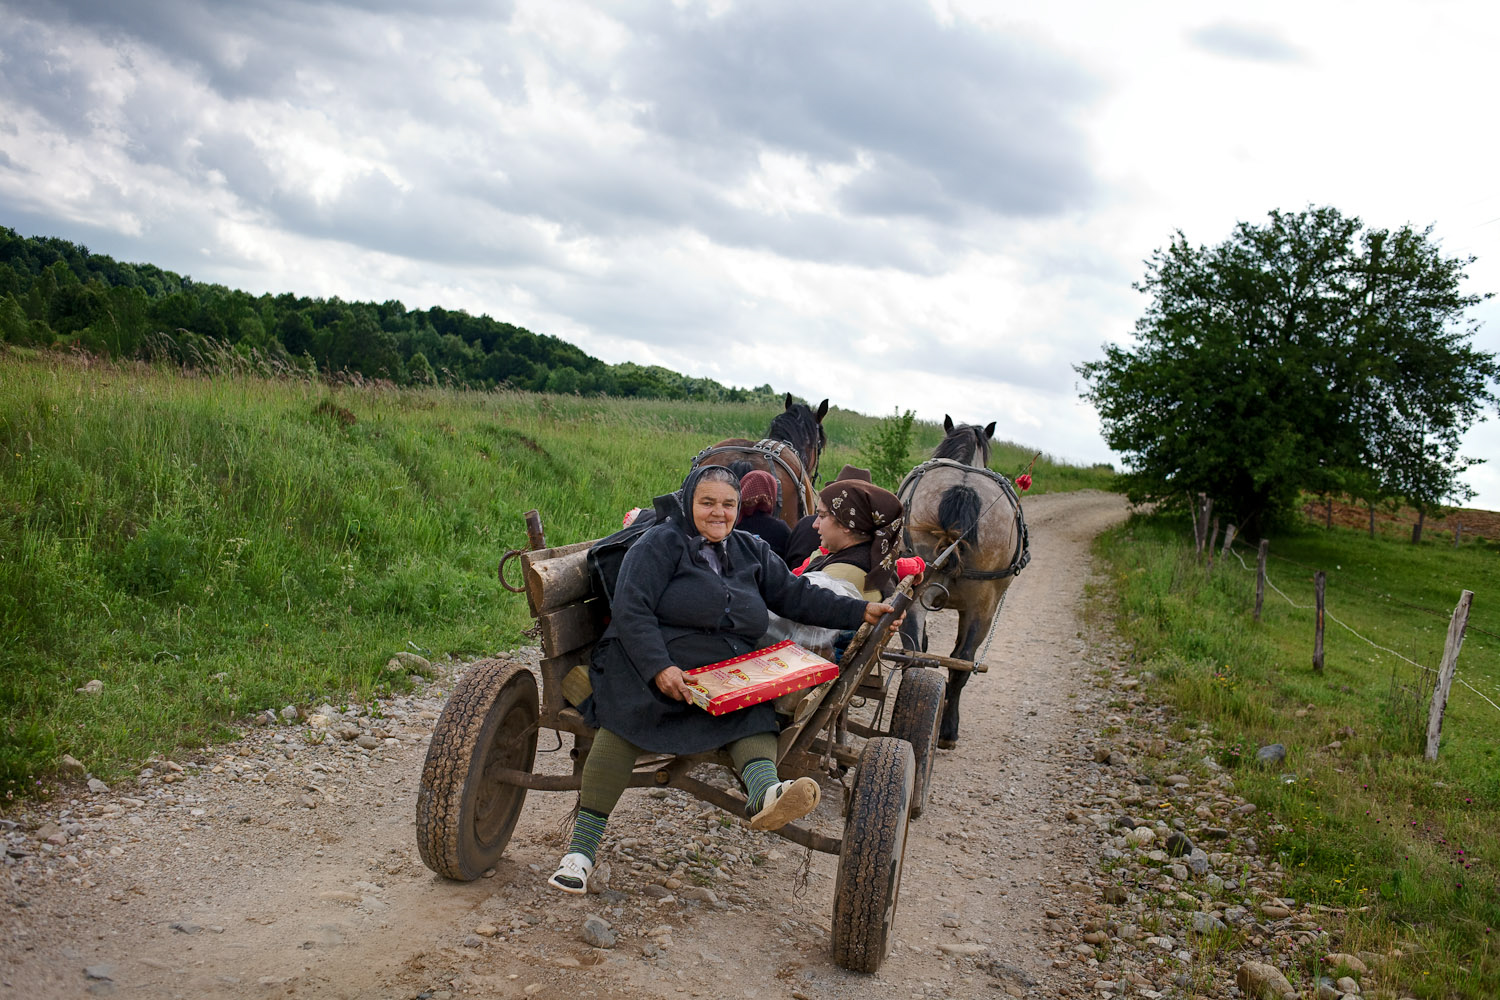 Zece-Hotare village, Romania.A family comes by horse-drawn cart to buy provisions on one of the two days in the week when bread is delivered. Horse-drawn carts are still a very common form of transport.